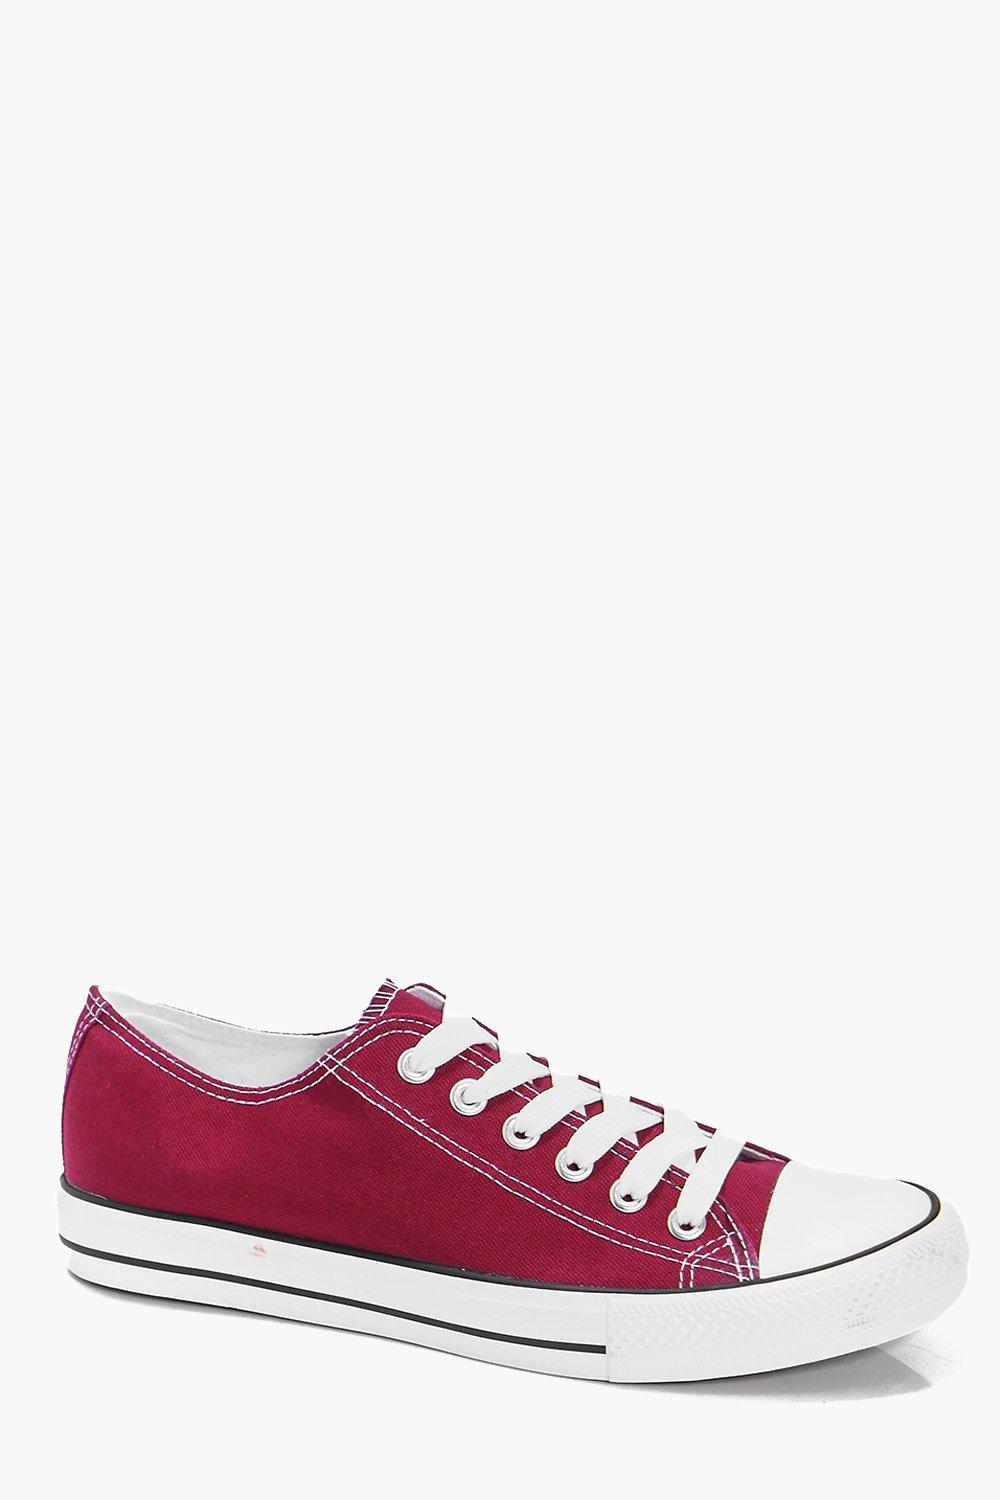 Burgundy Canvas Plimsolls